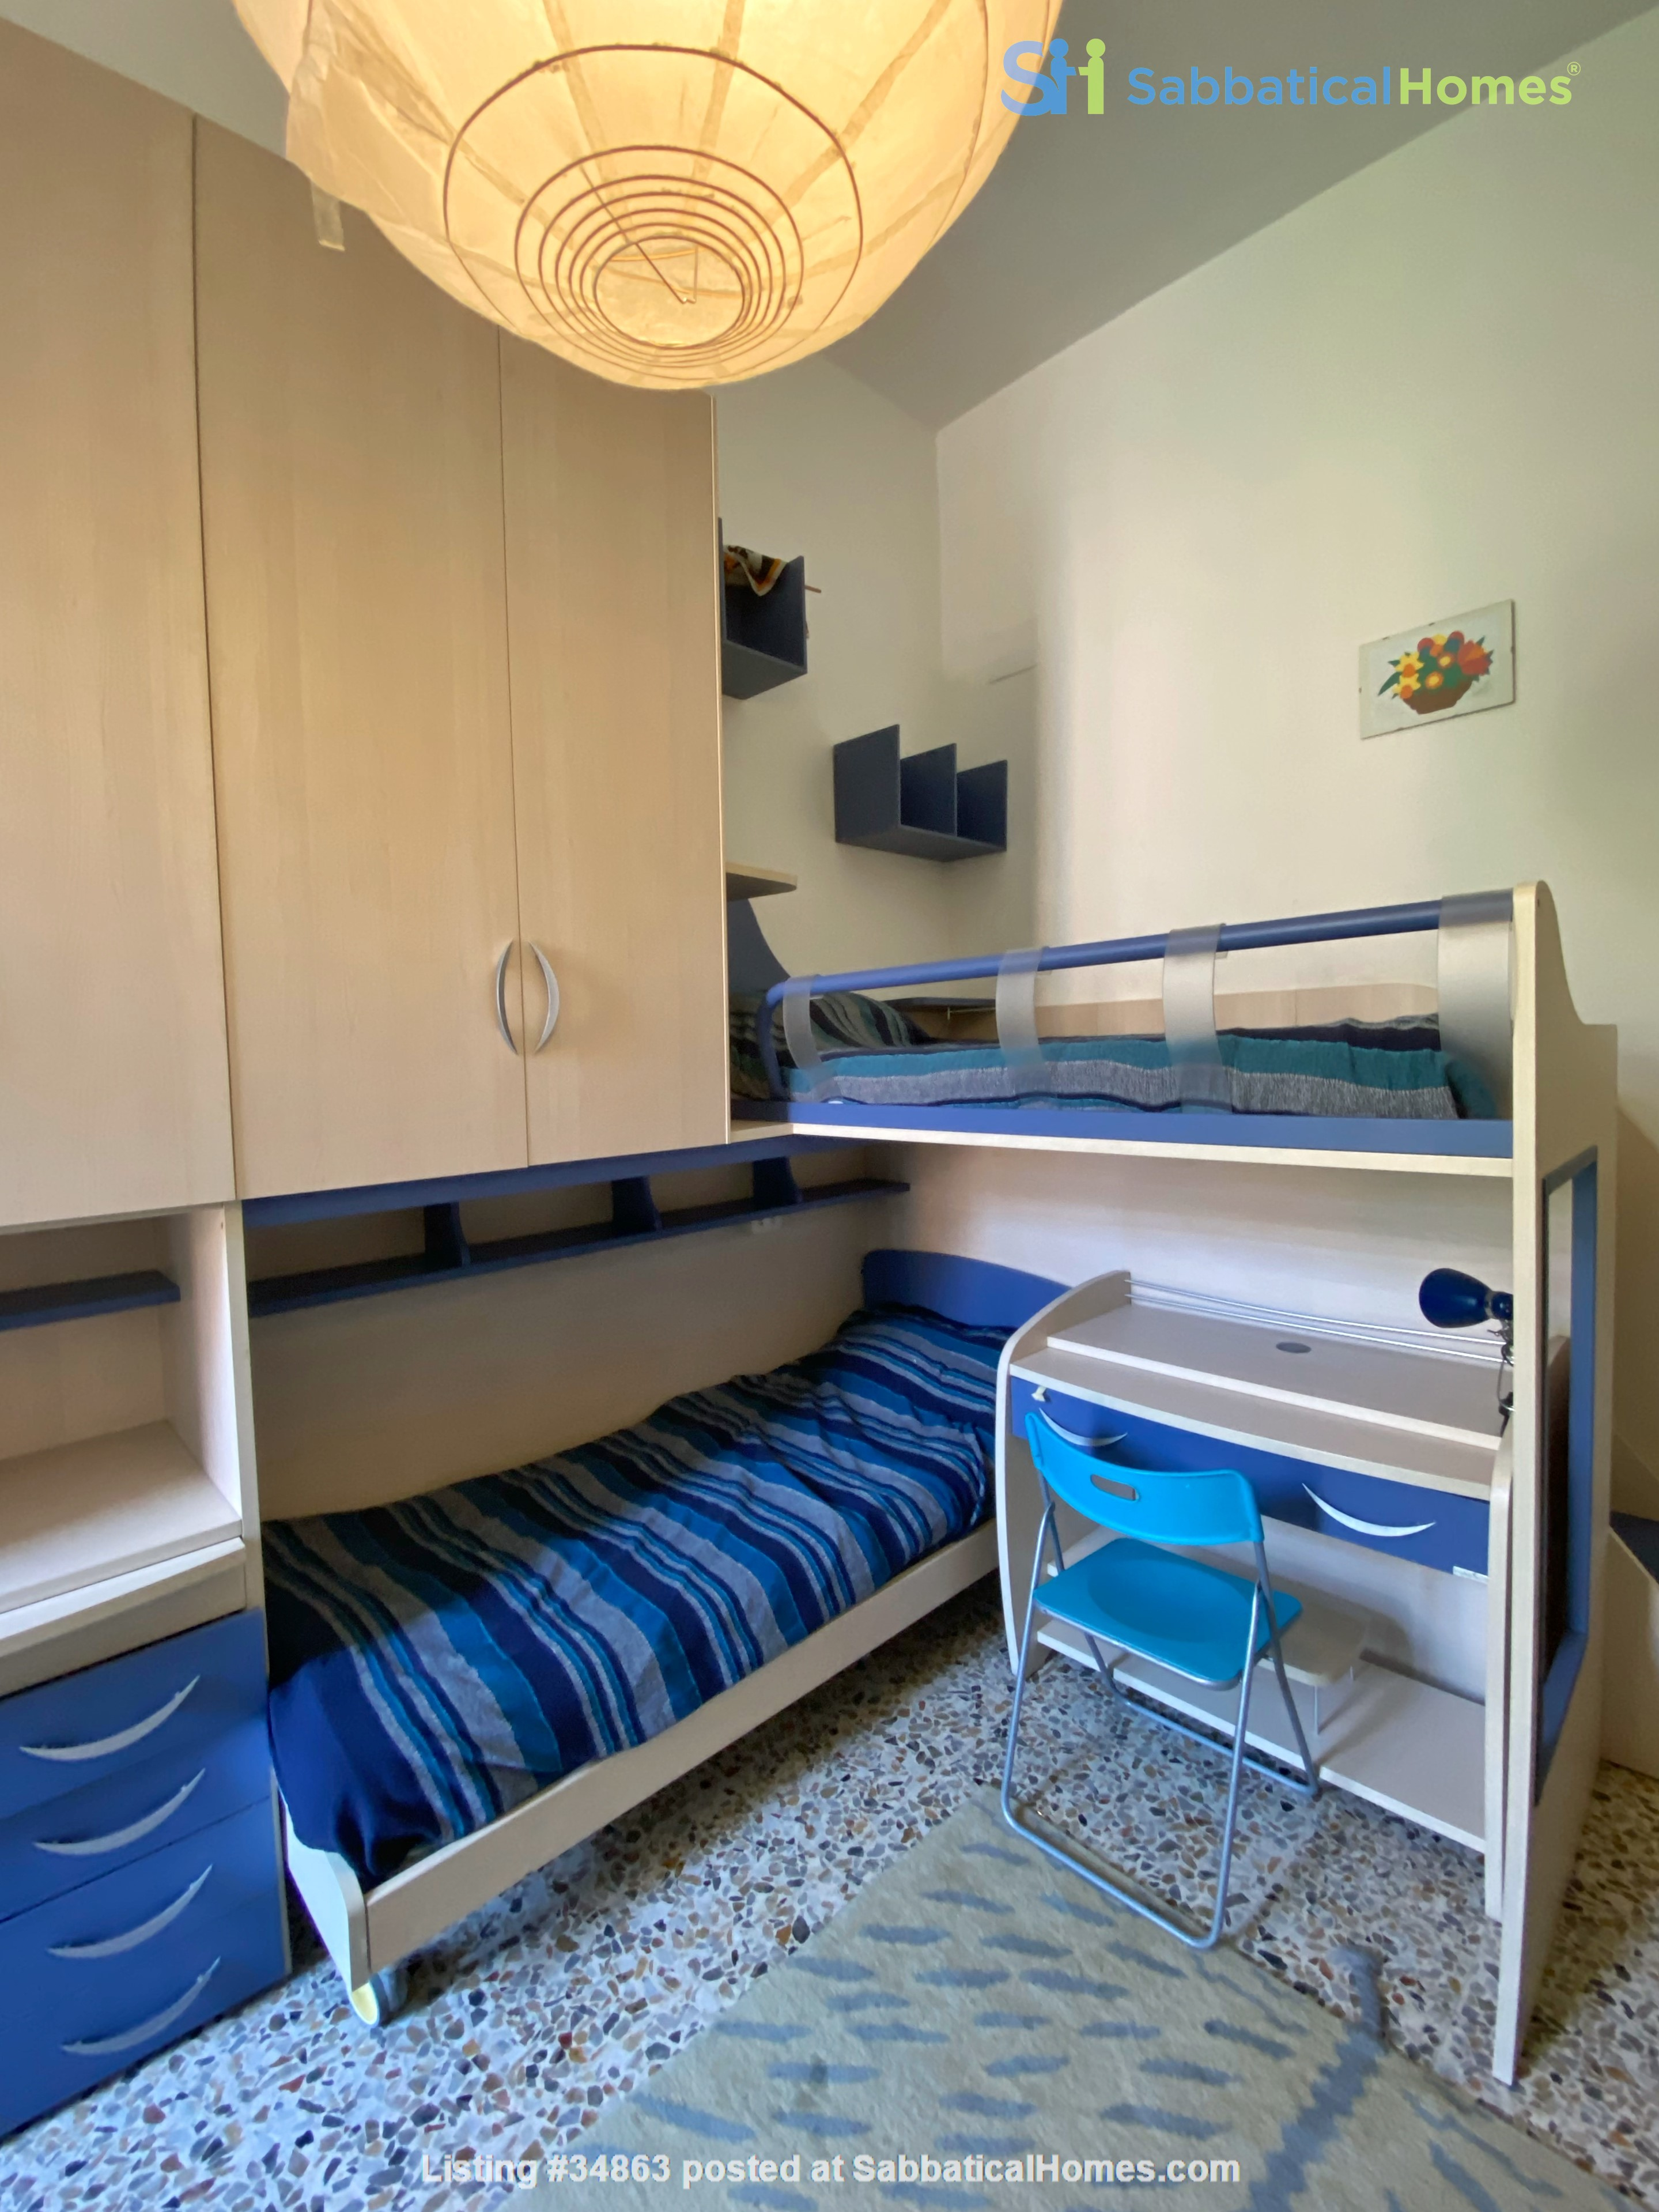 2 BR, 2 BA, spacious and comfortable apartment in Rome, Trastevere Home Rental in Rome 6